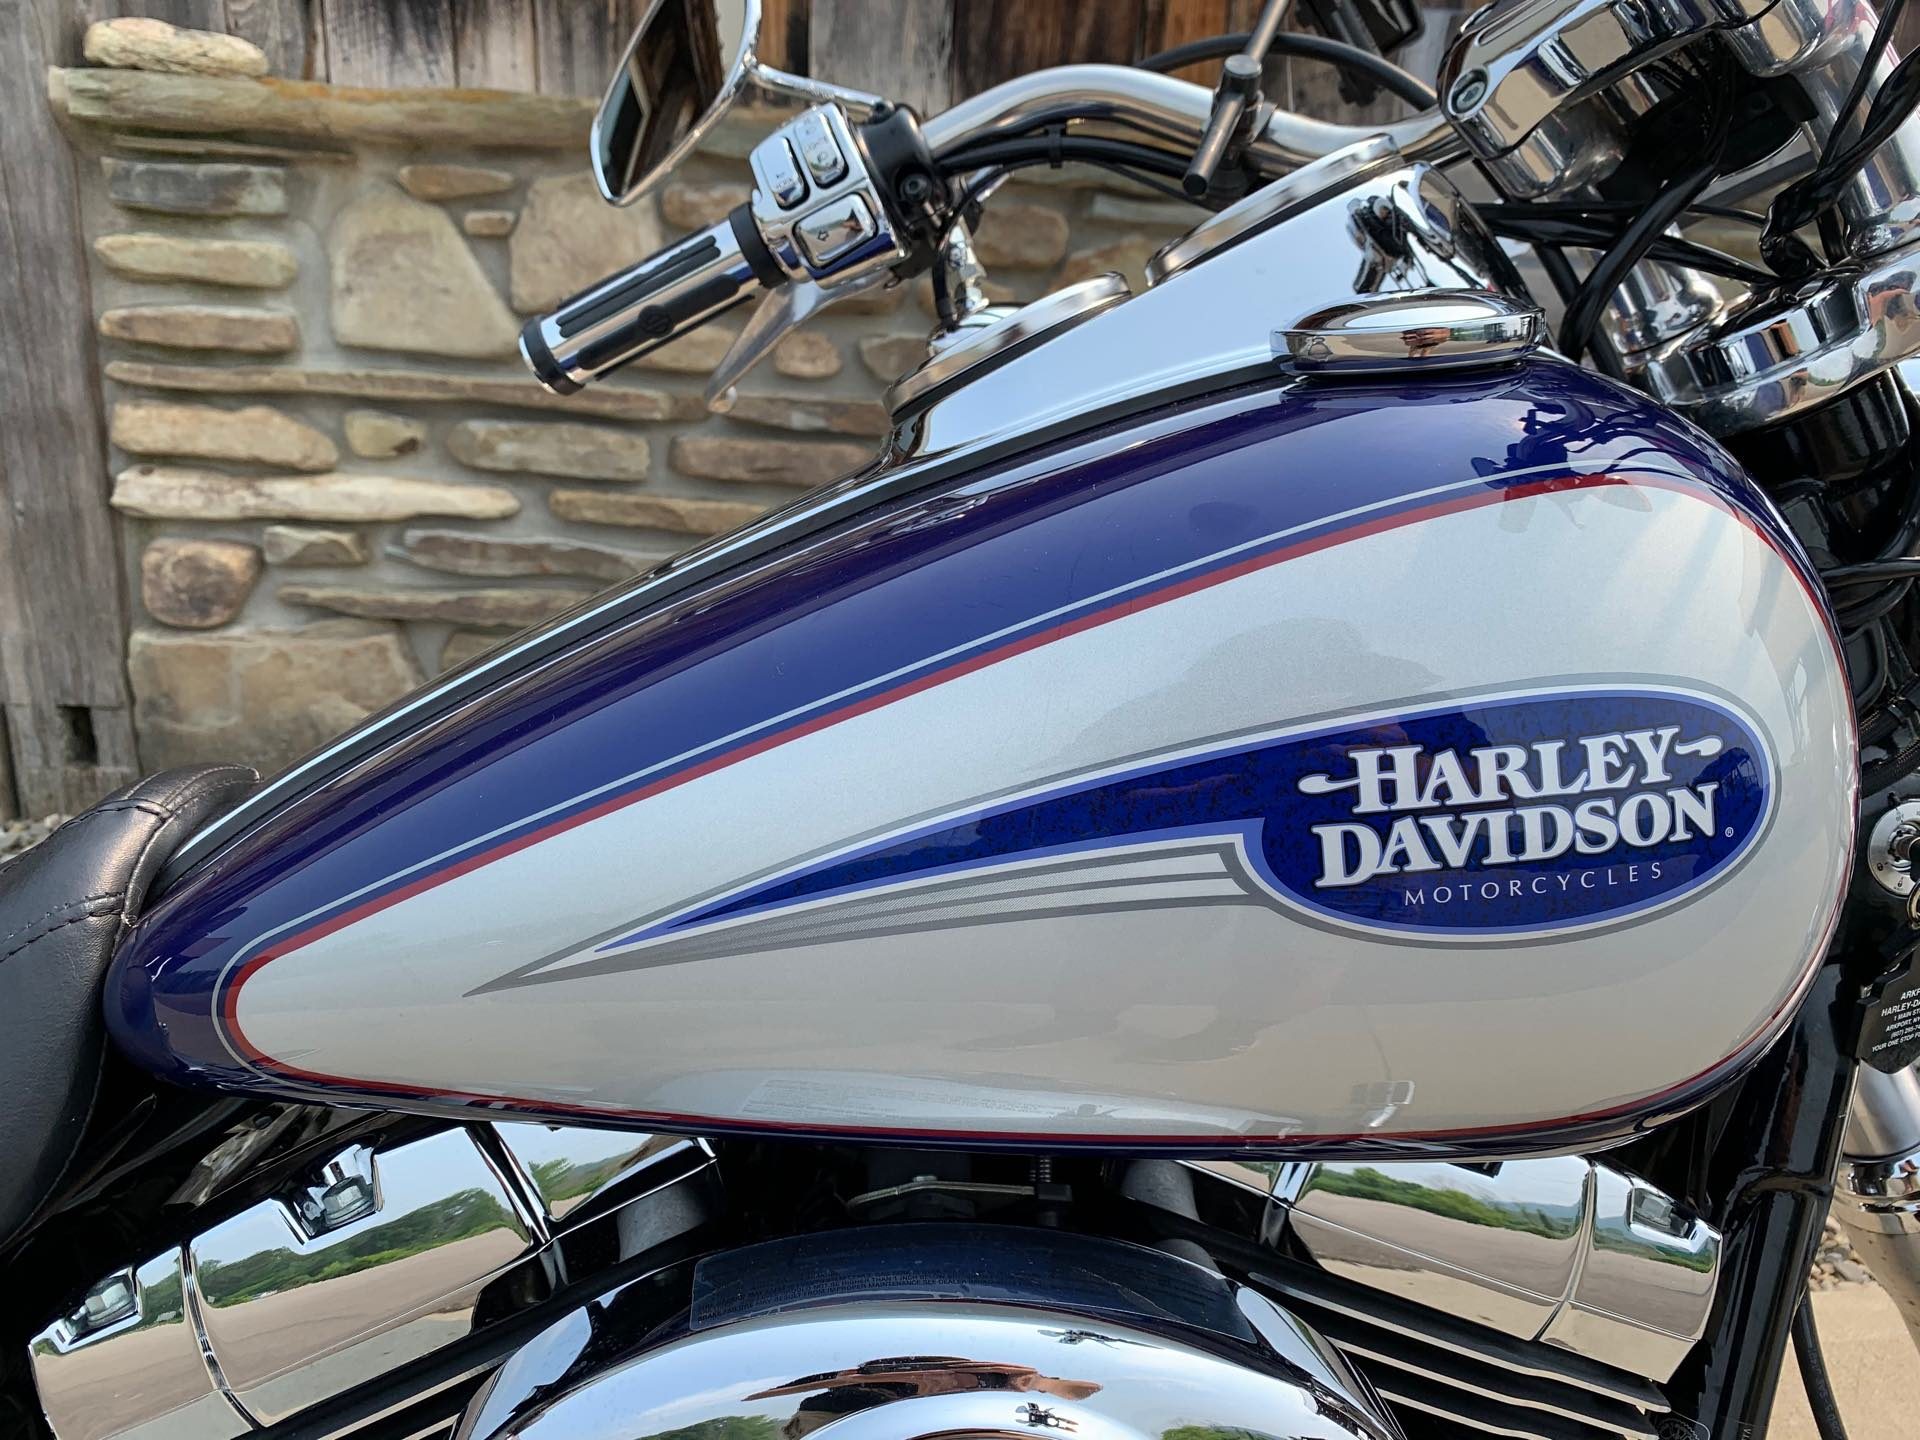 2006 Harley-Davidson Dyna Glide Low Rider at Arkport Cycles